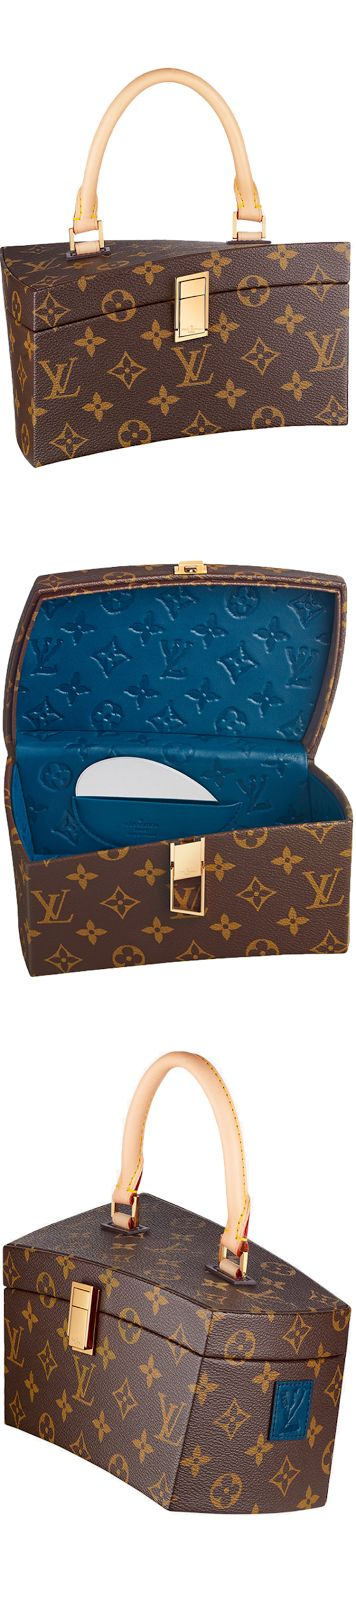 LOOKandLOVEwithLOLO~ Louis Vuitton Icon and Iconoclasts Collection. Twisted Box Frank Gehry